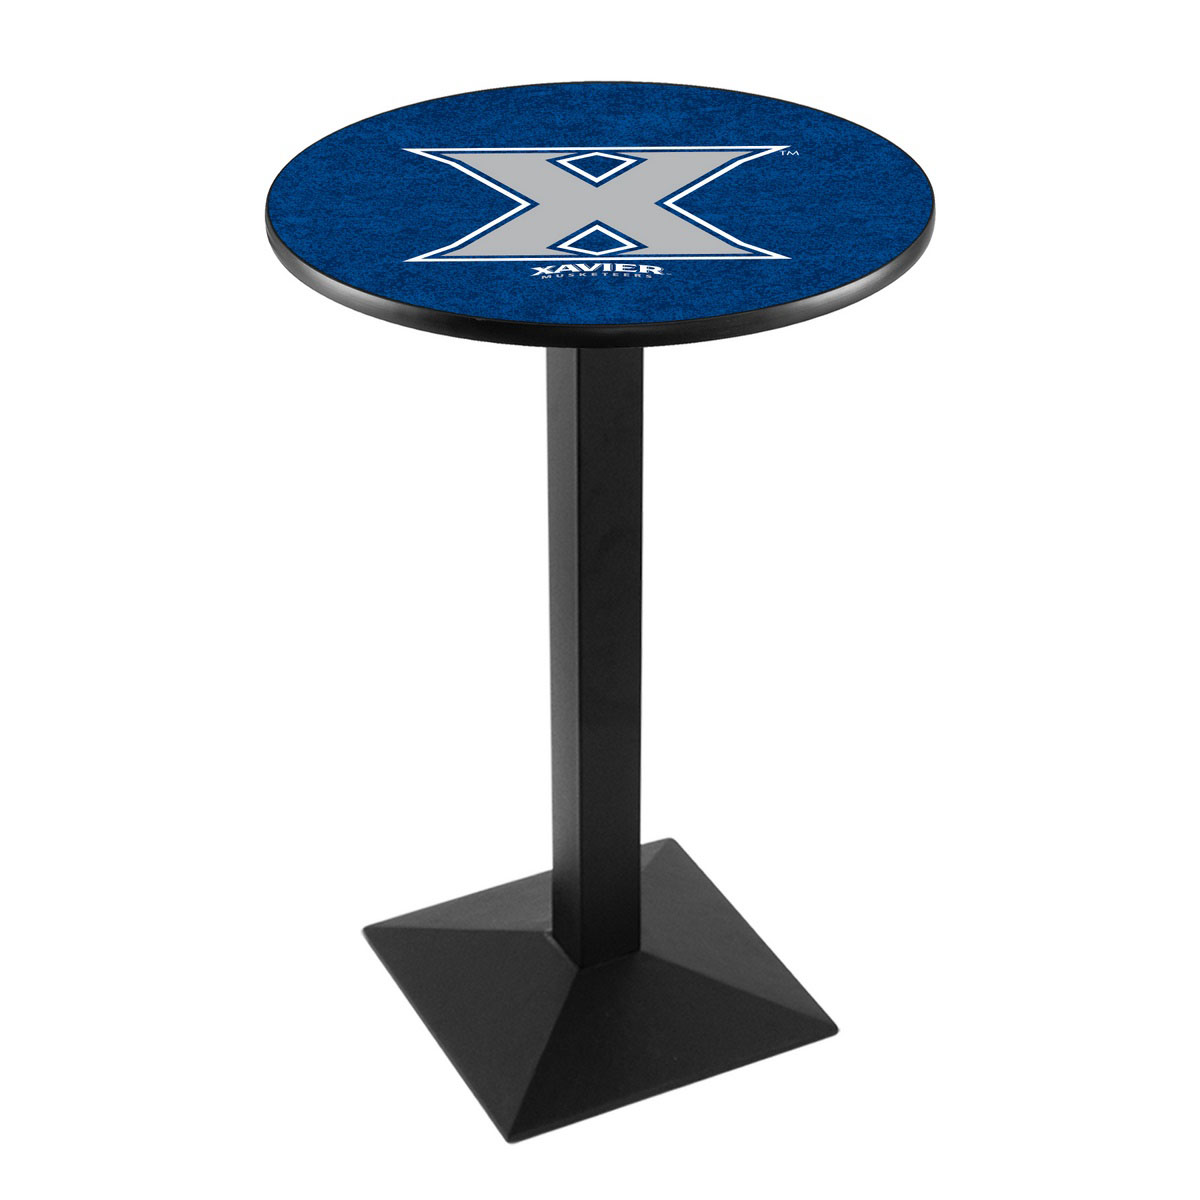 User friendly Xavier Logo Pub Bar Table Square Stand Product Photo